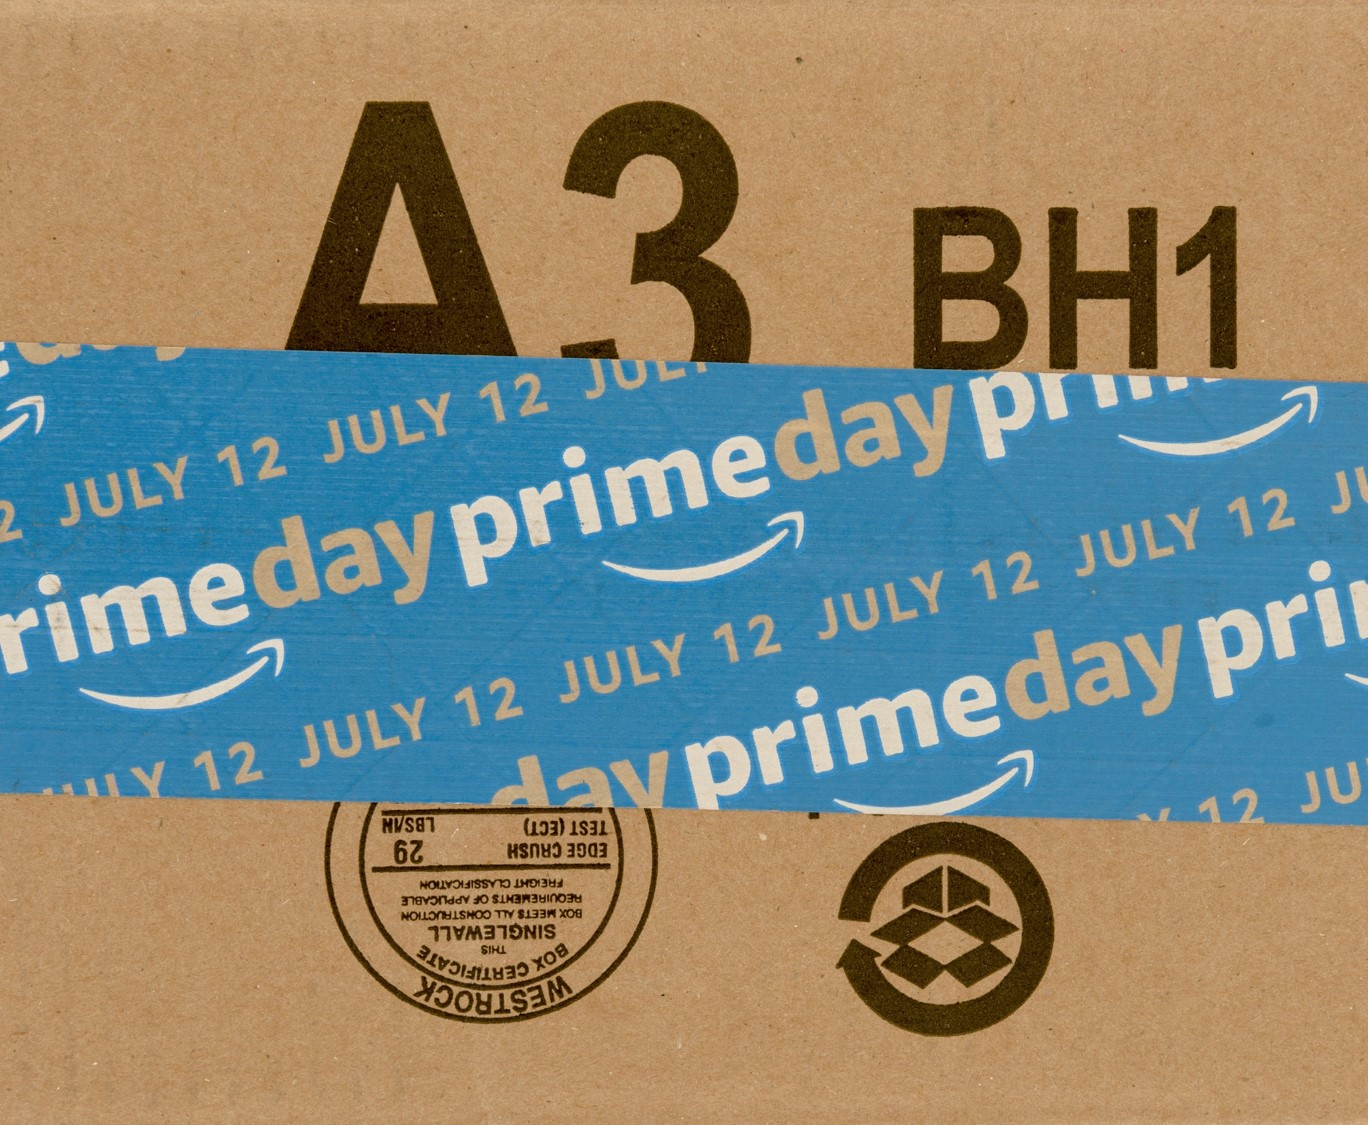 Amazon Prime Day Impact Report 2016